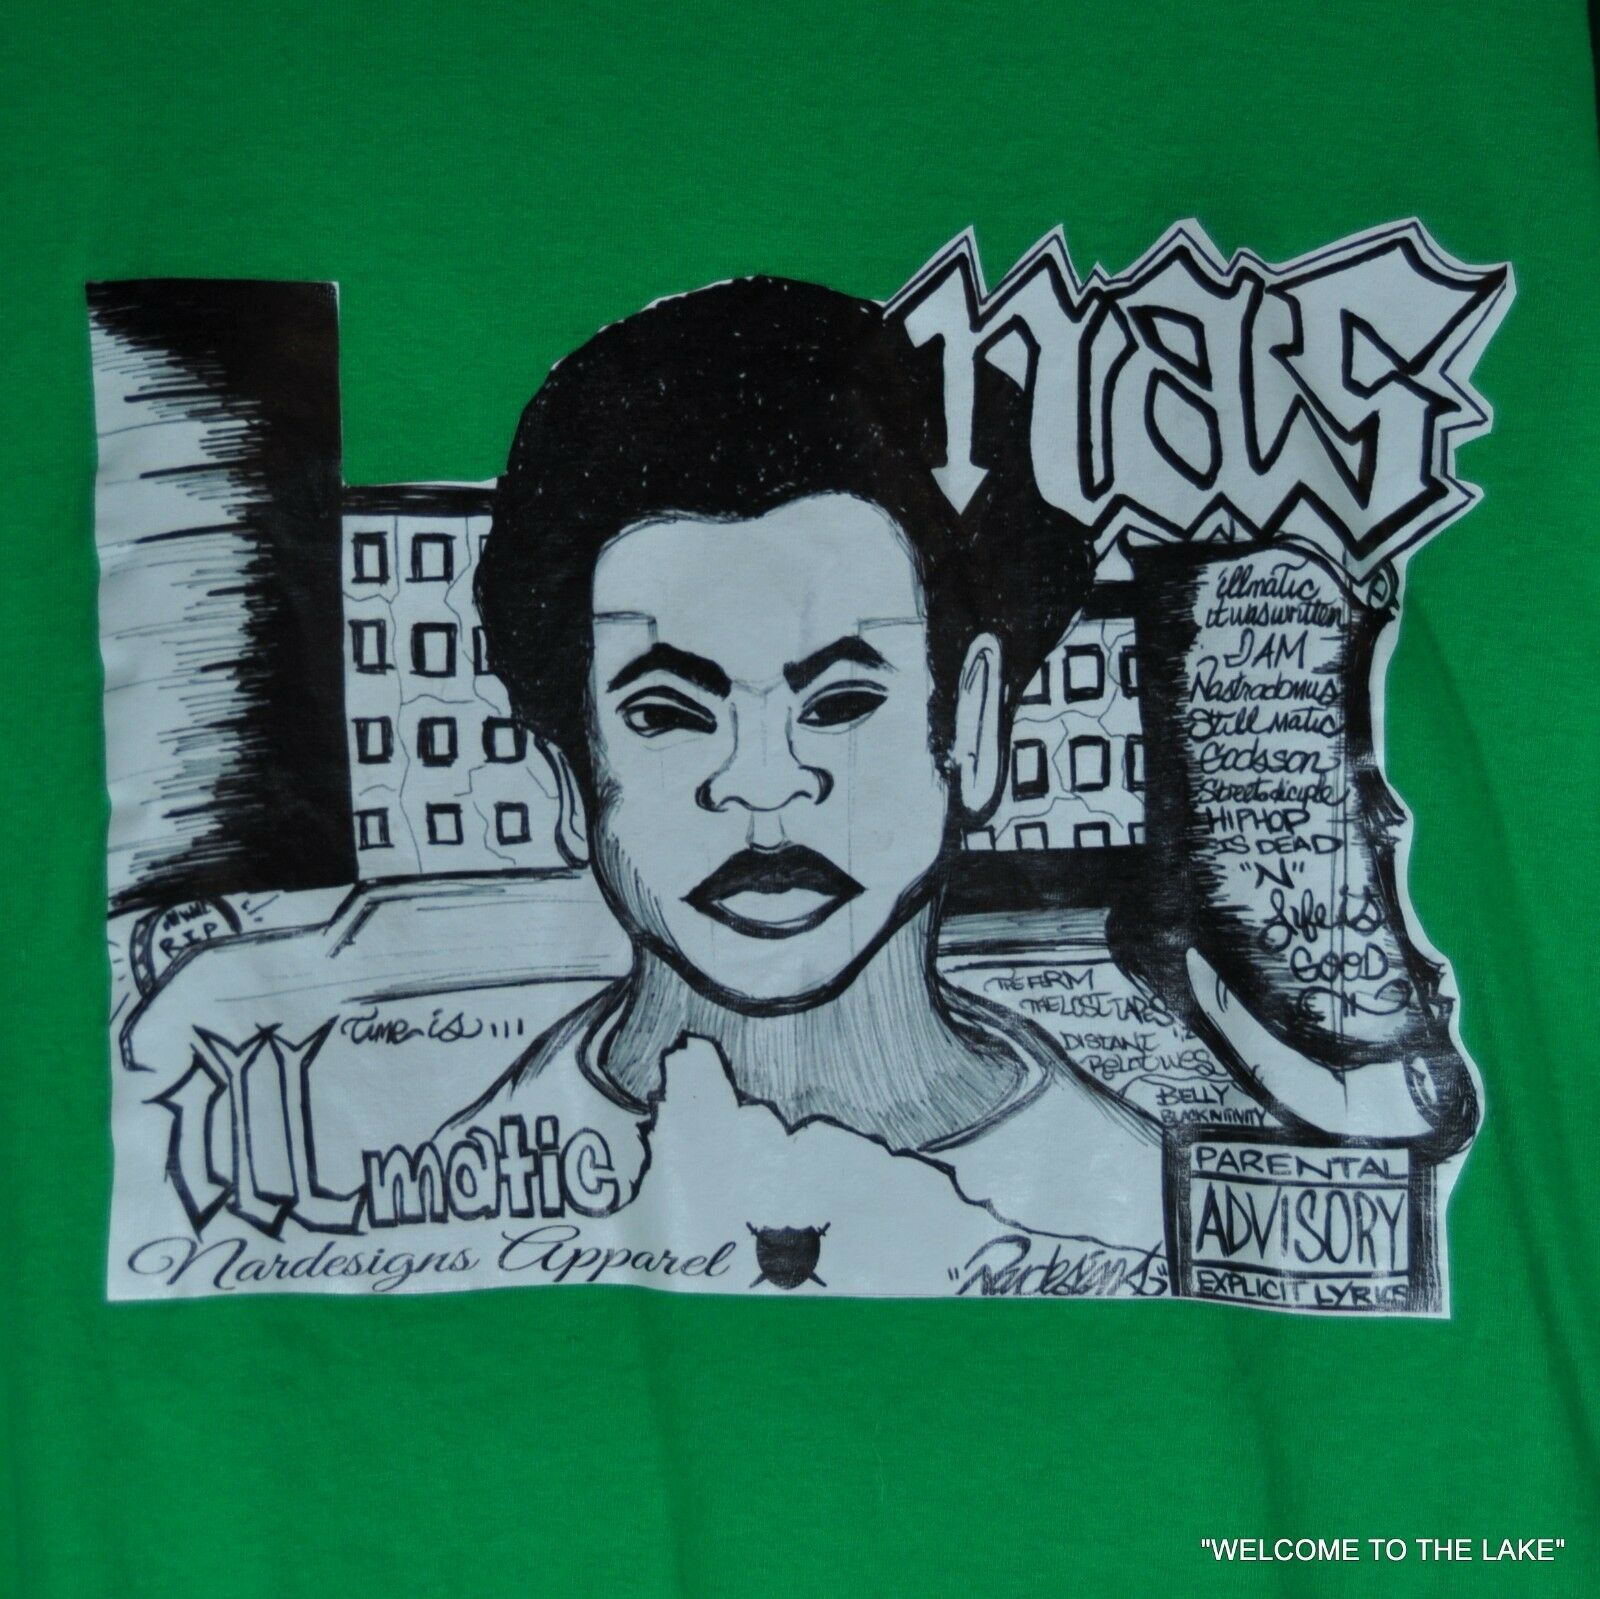 NAS  ILLMATIC  T-SHIRT, FROM 2014, ONE-OF-A-KIND, XL, GRAPHIC ALBUM COVER